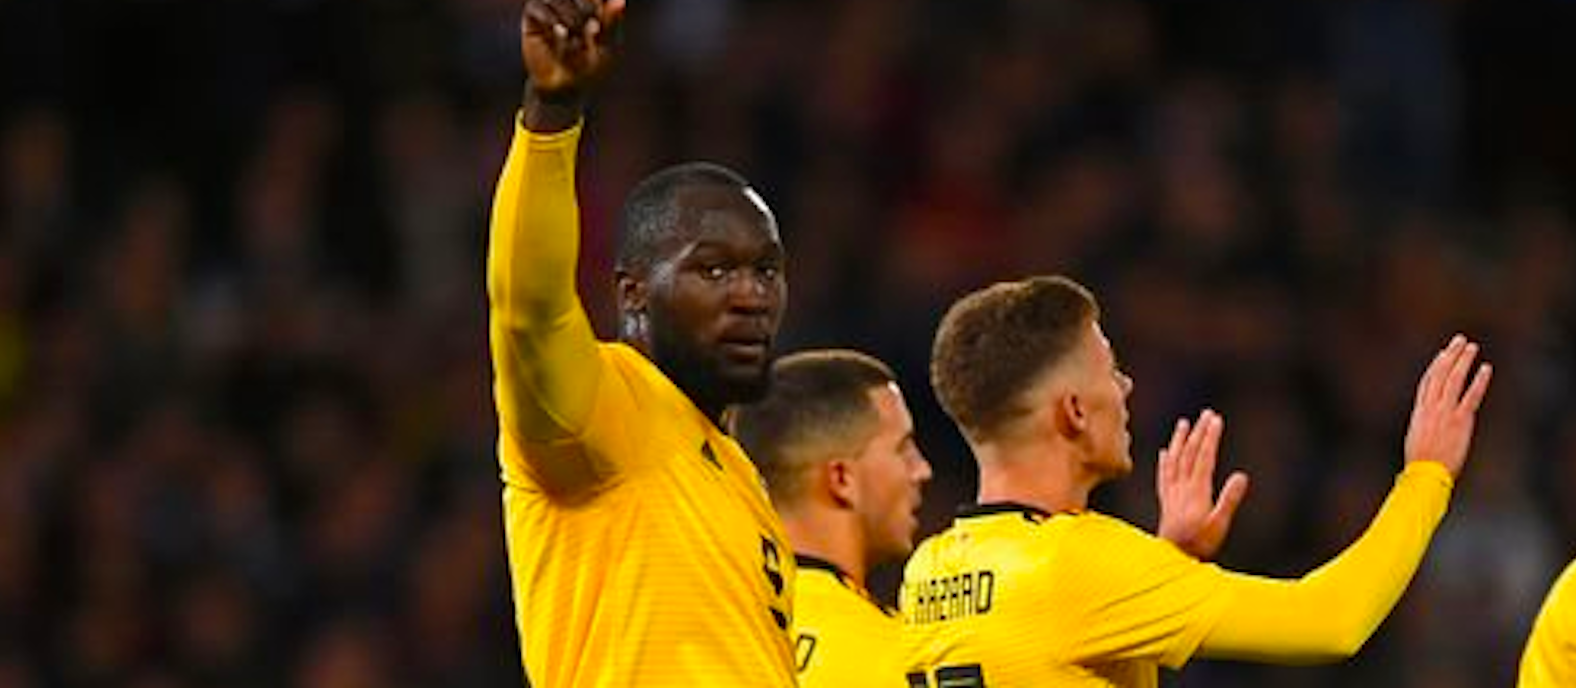 Manchester United fans delighted with Romelu Lukaku's performance vs Watford